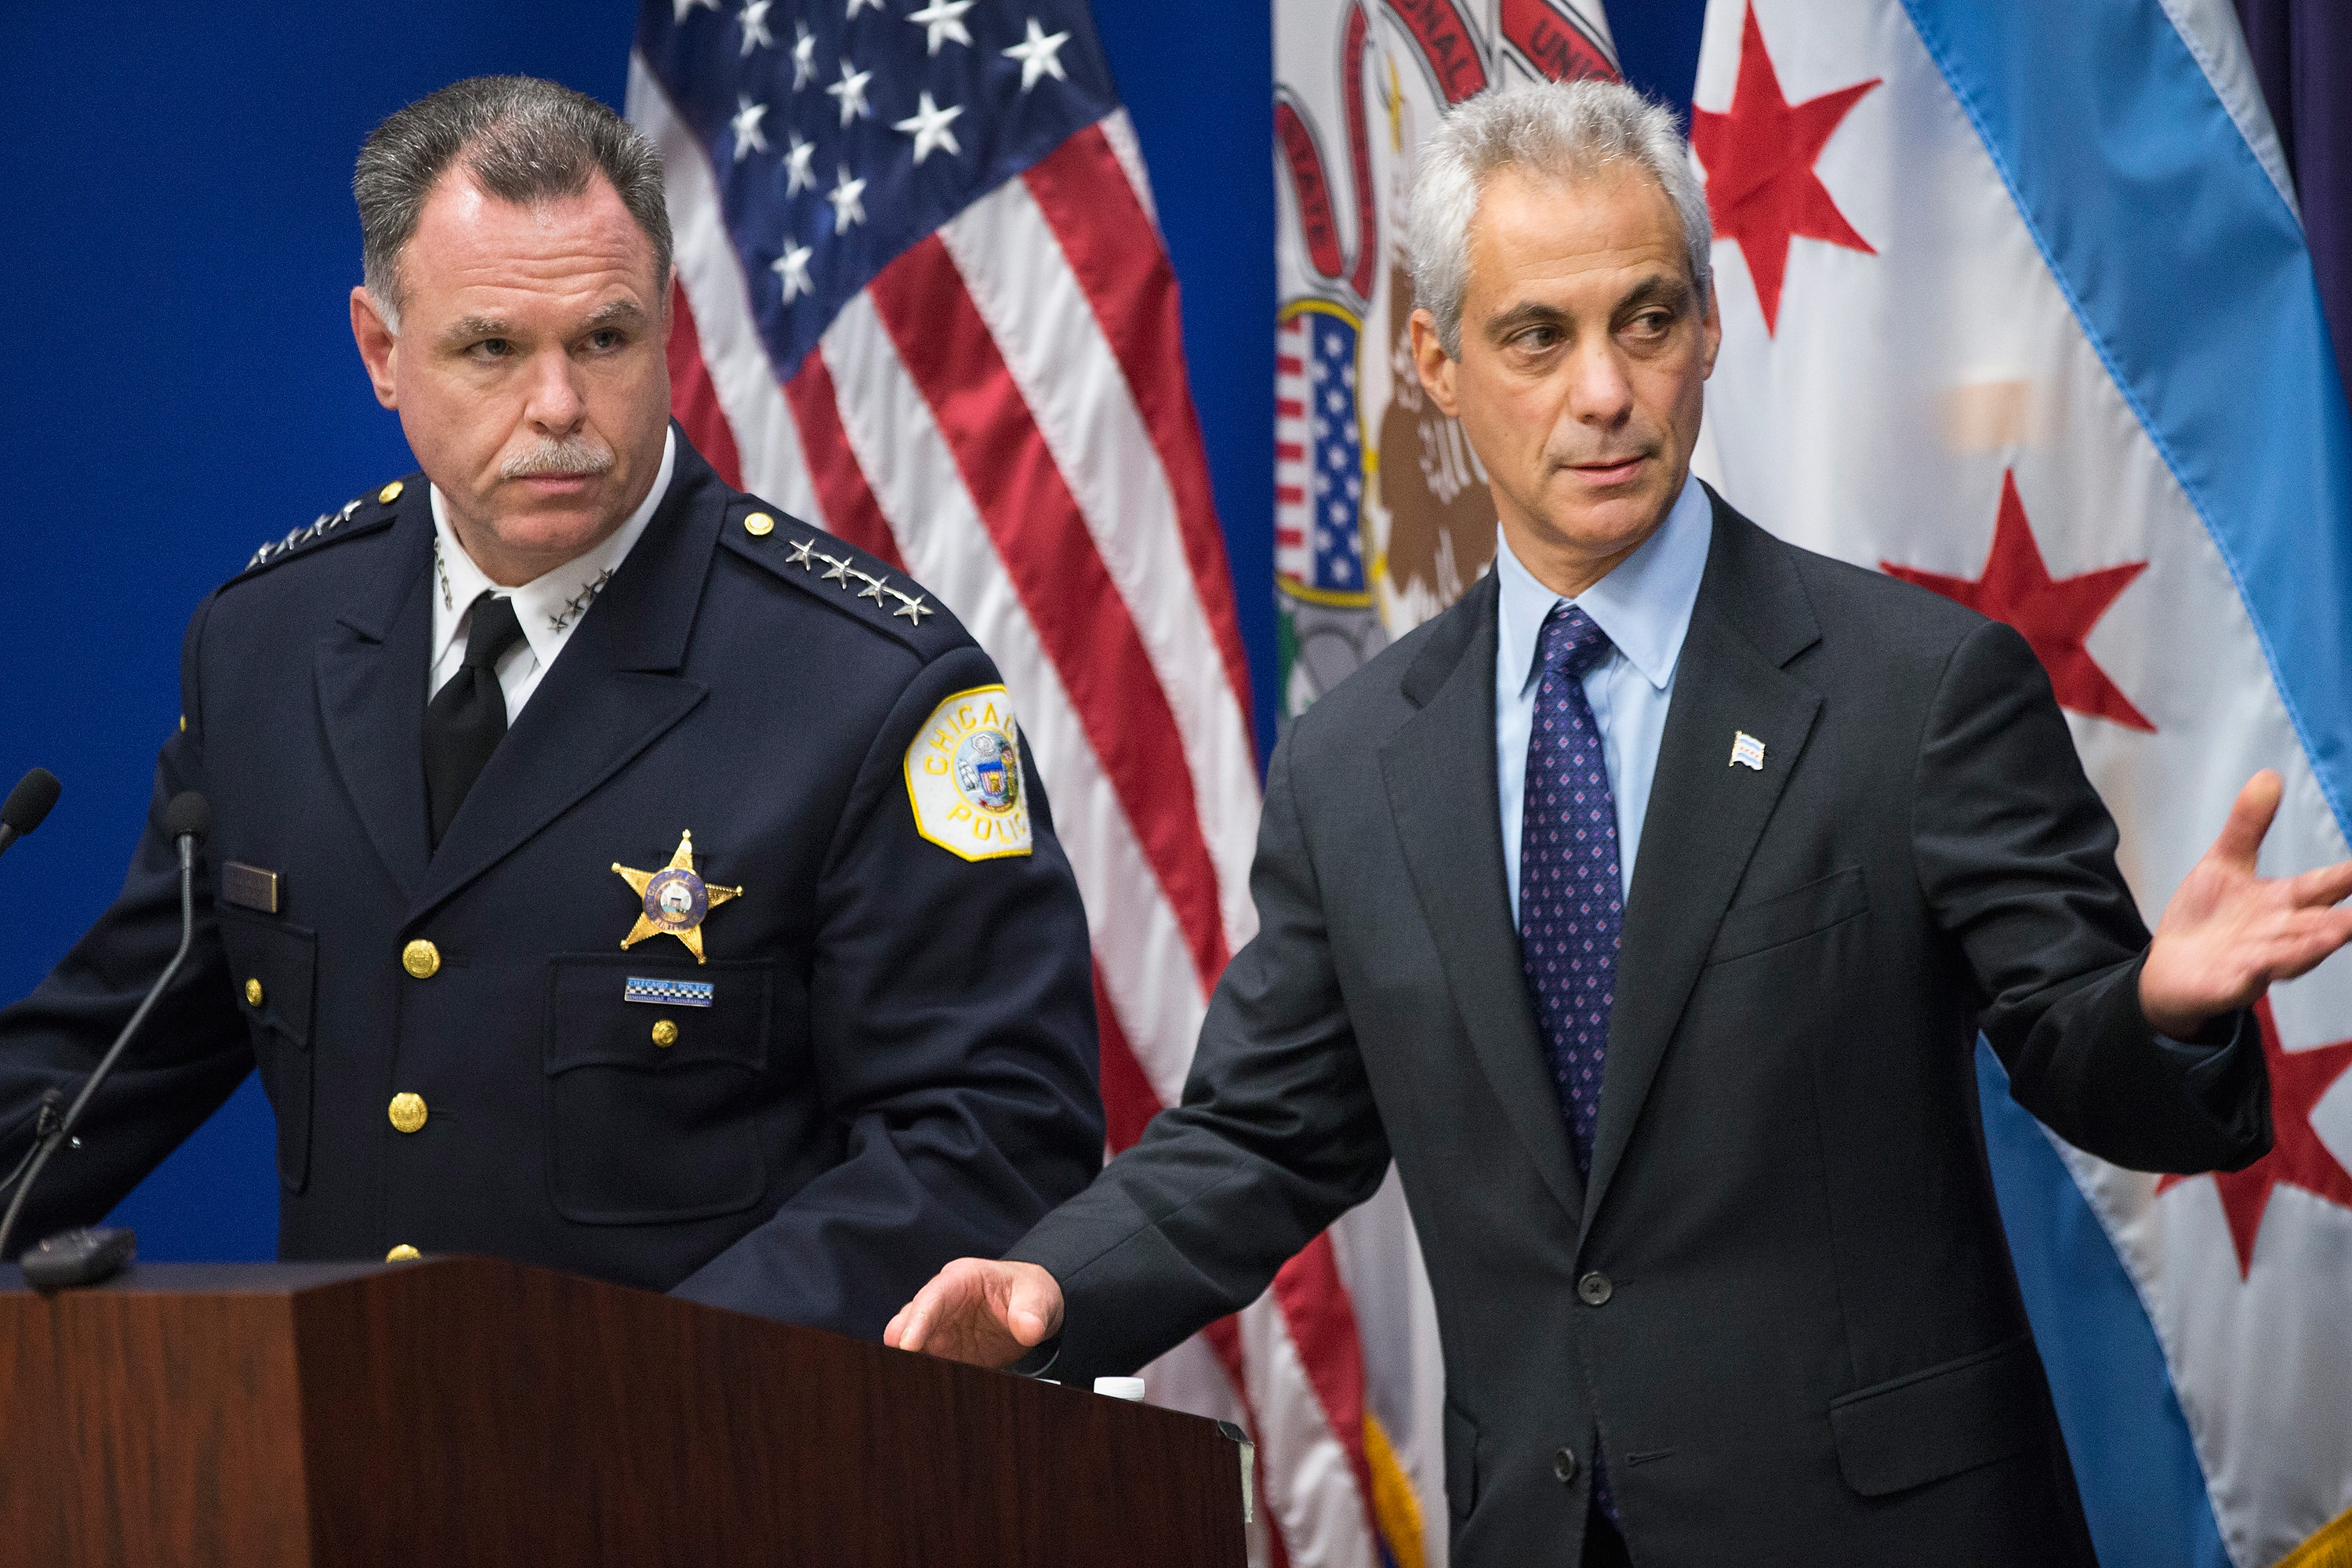 Chicago Police Superintendent Garry McCarthy (L) and Mayor Rahm Emanuel arrive for a  press conference to address the arrest of Chicago Police officer Jason Van Dyke in Chicago on Nov. 24, 2015.